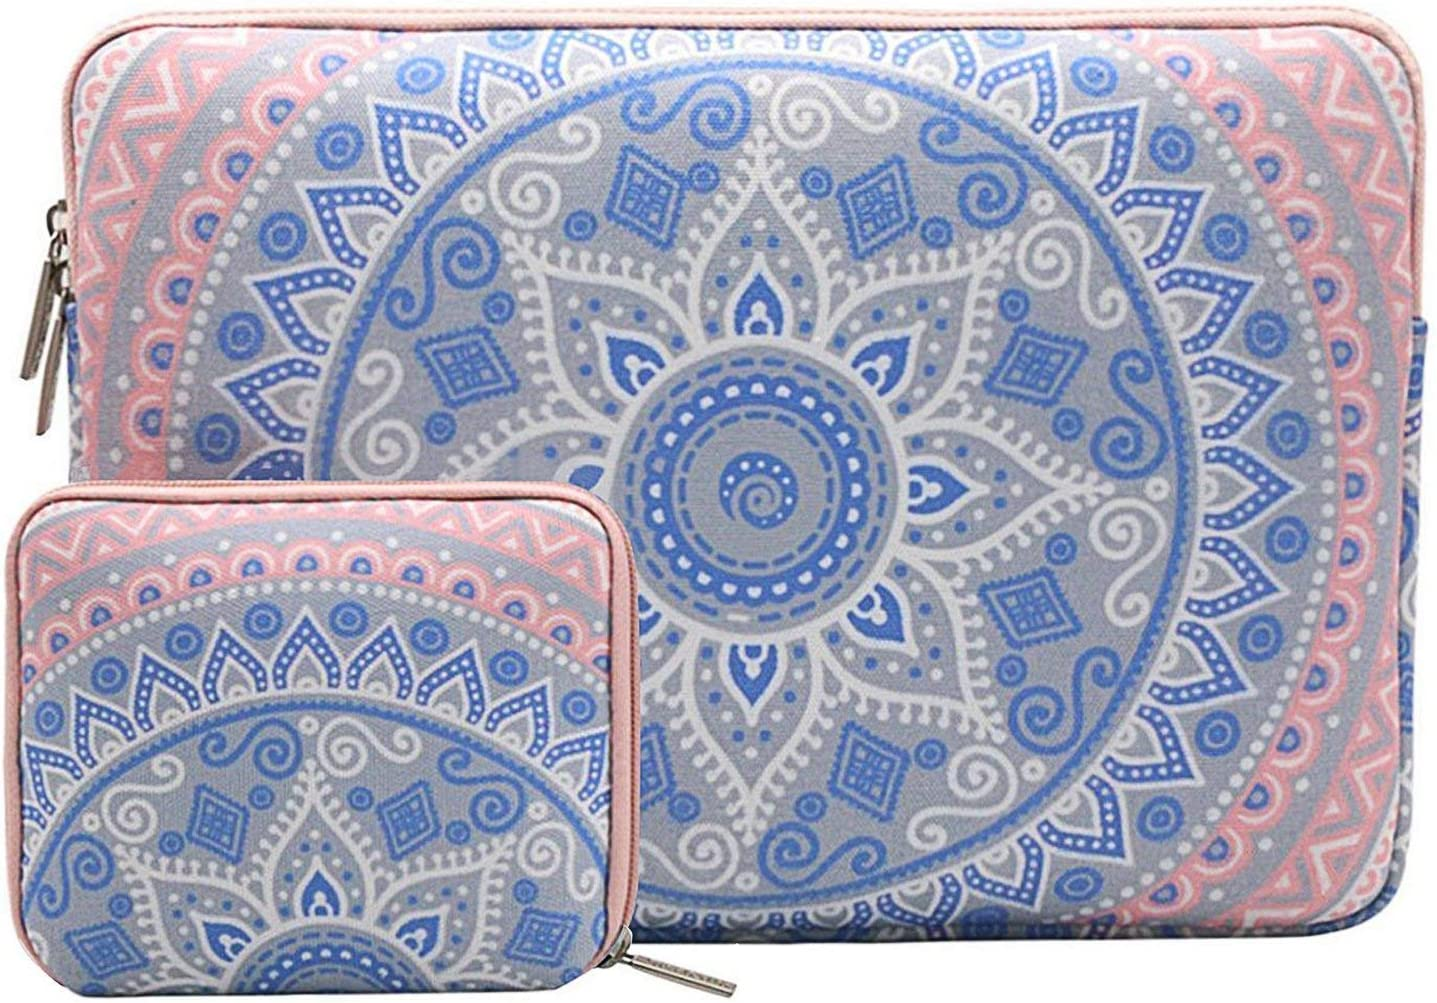 MOSISO Laptop Sleeve Compatible with 15 inch MacBook Pro Touch Bar A1990 A1707, ThinkPad X1 Yoga, 14 Dell HP Acer, Surface Laptop 3 15, Protective Carrying Bag Cover with Small Case Mandala MO-MDL002